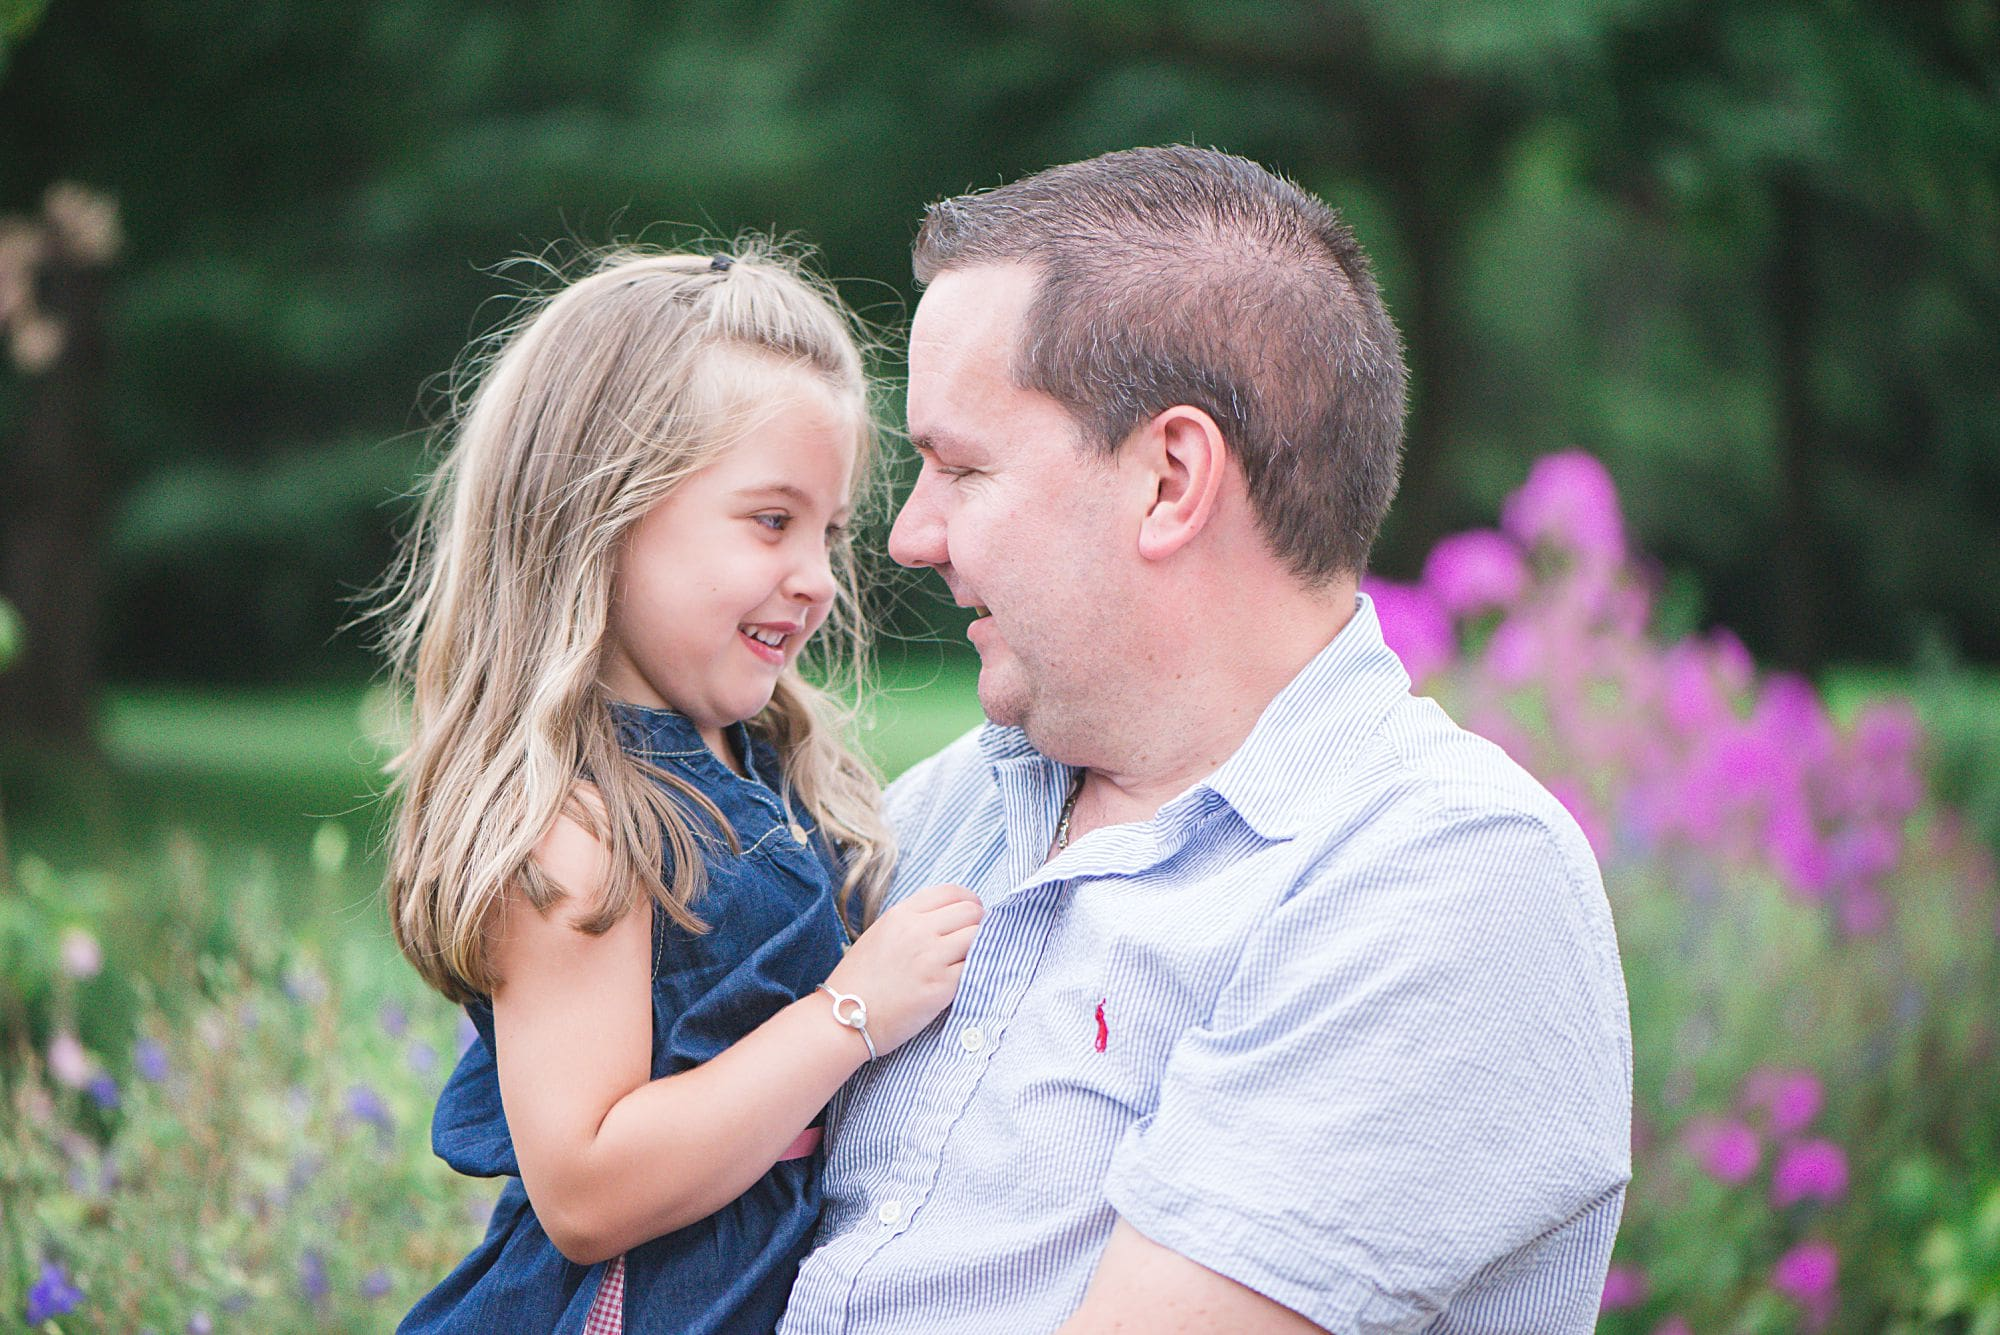 Daddy daughter portrait in a casual lifestyle pose outside in a botanic garden